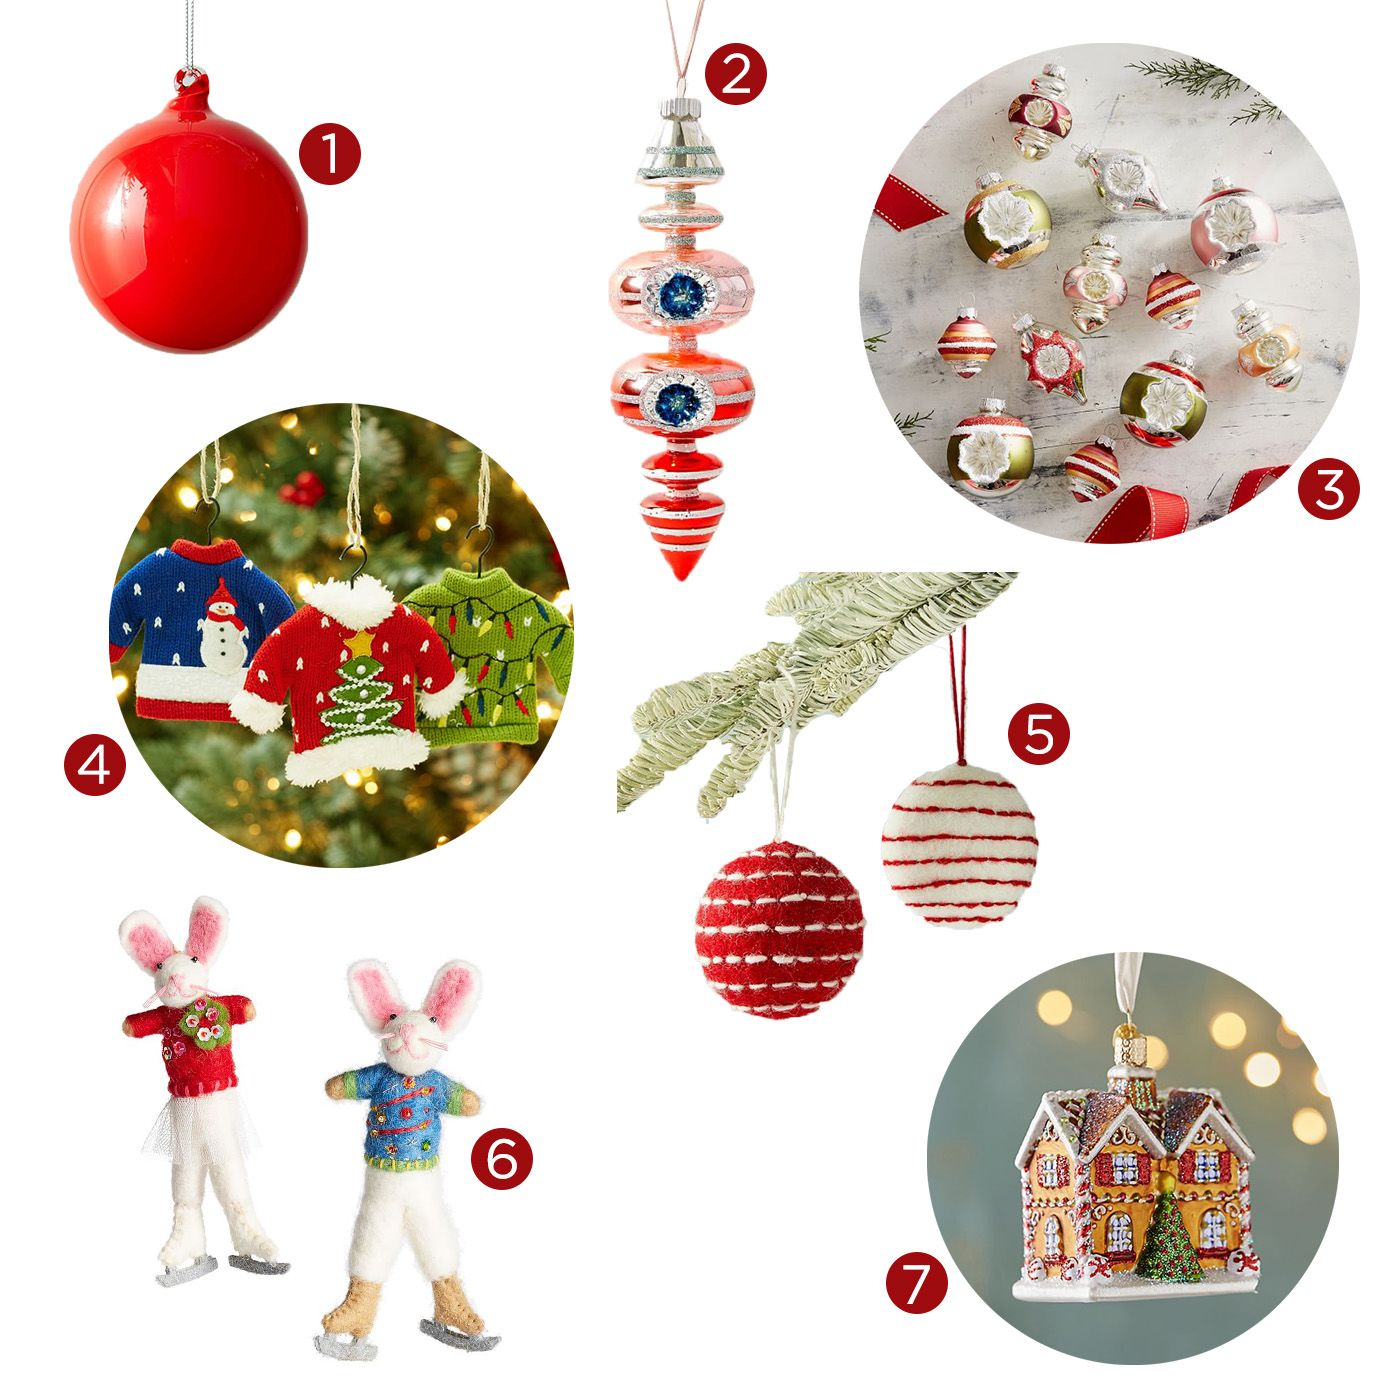 Pantone Christmas Ornaments The Best Ornaments To Match Every Décor Style Gray Malin